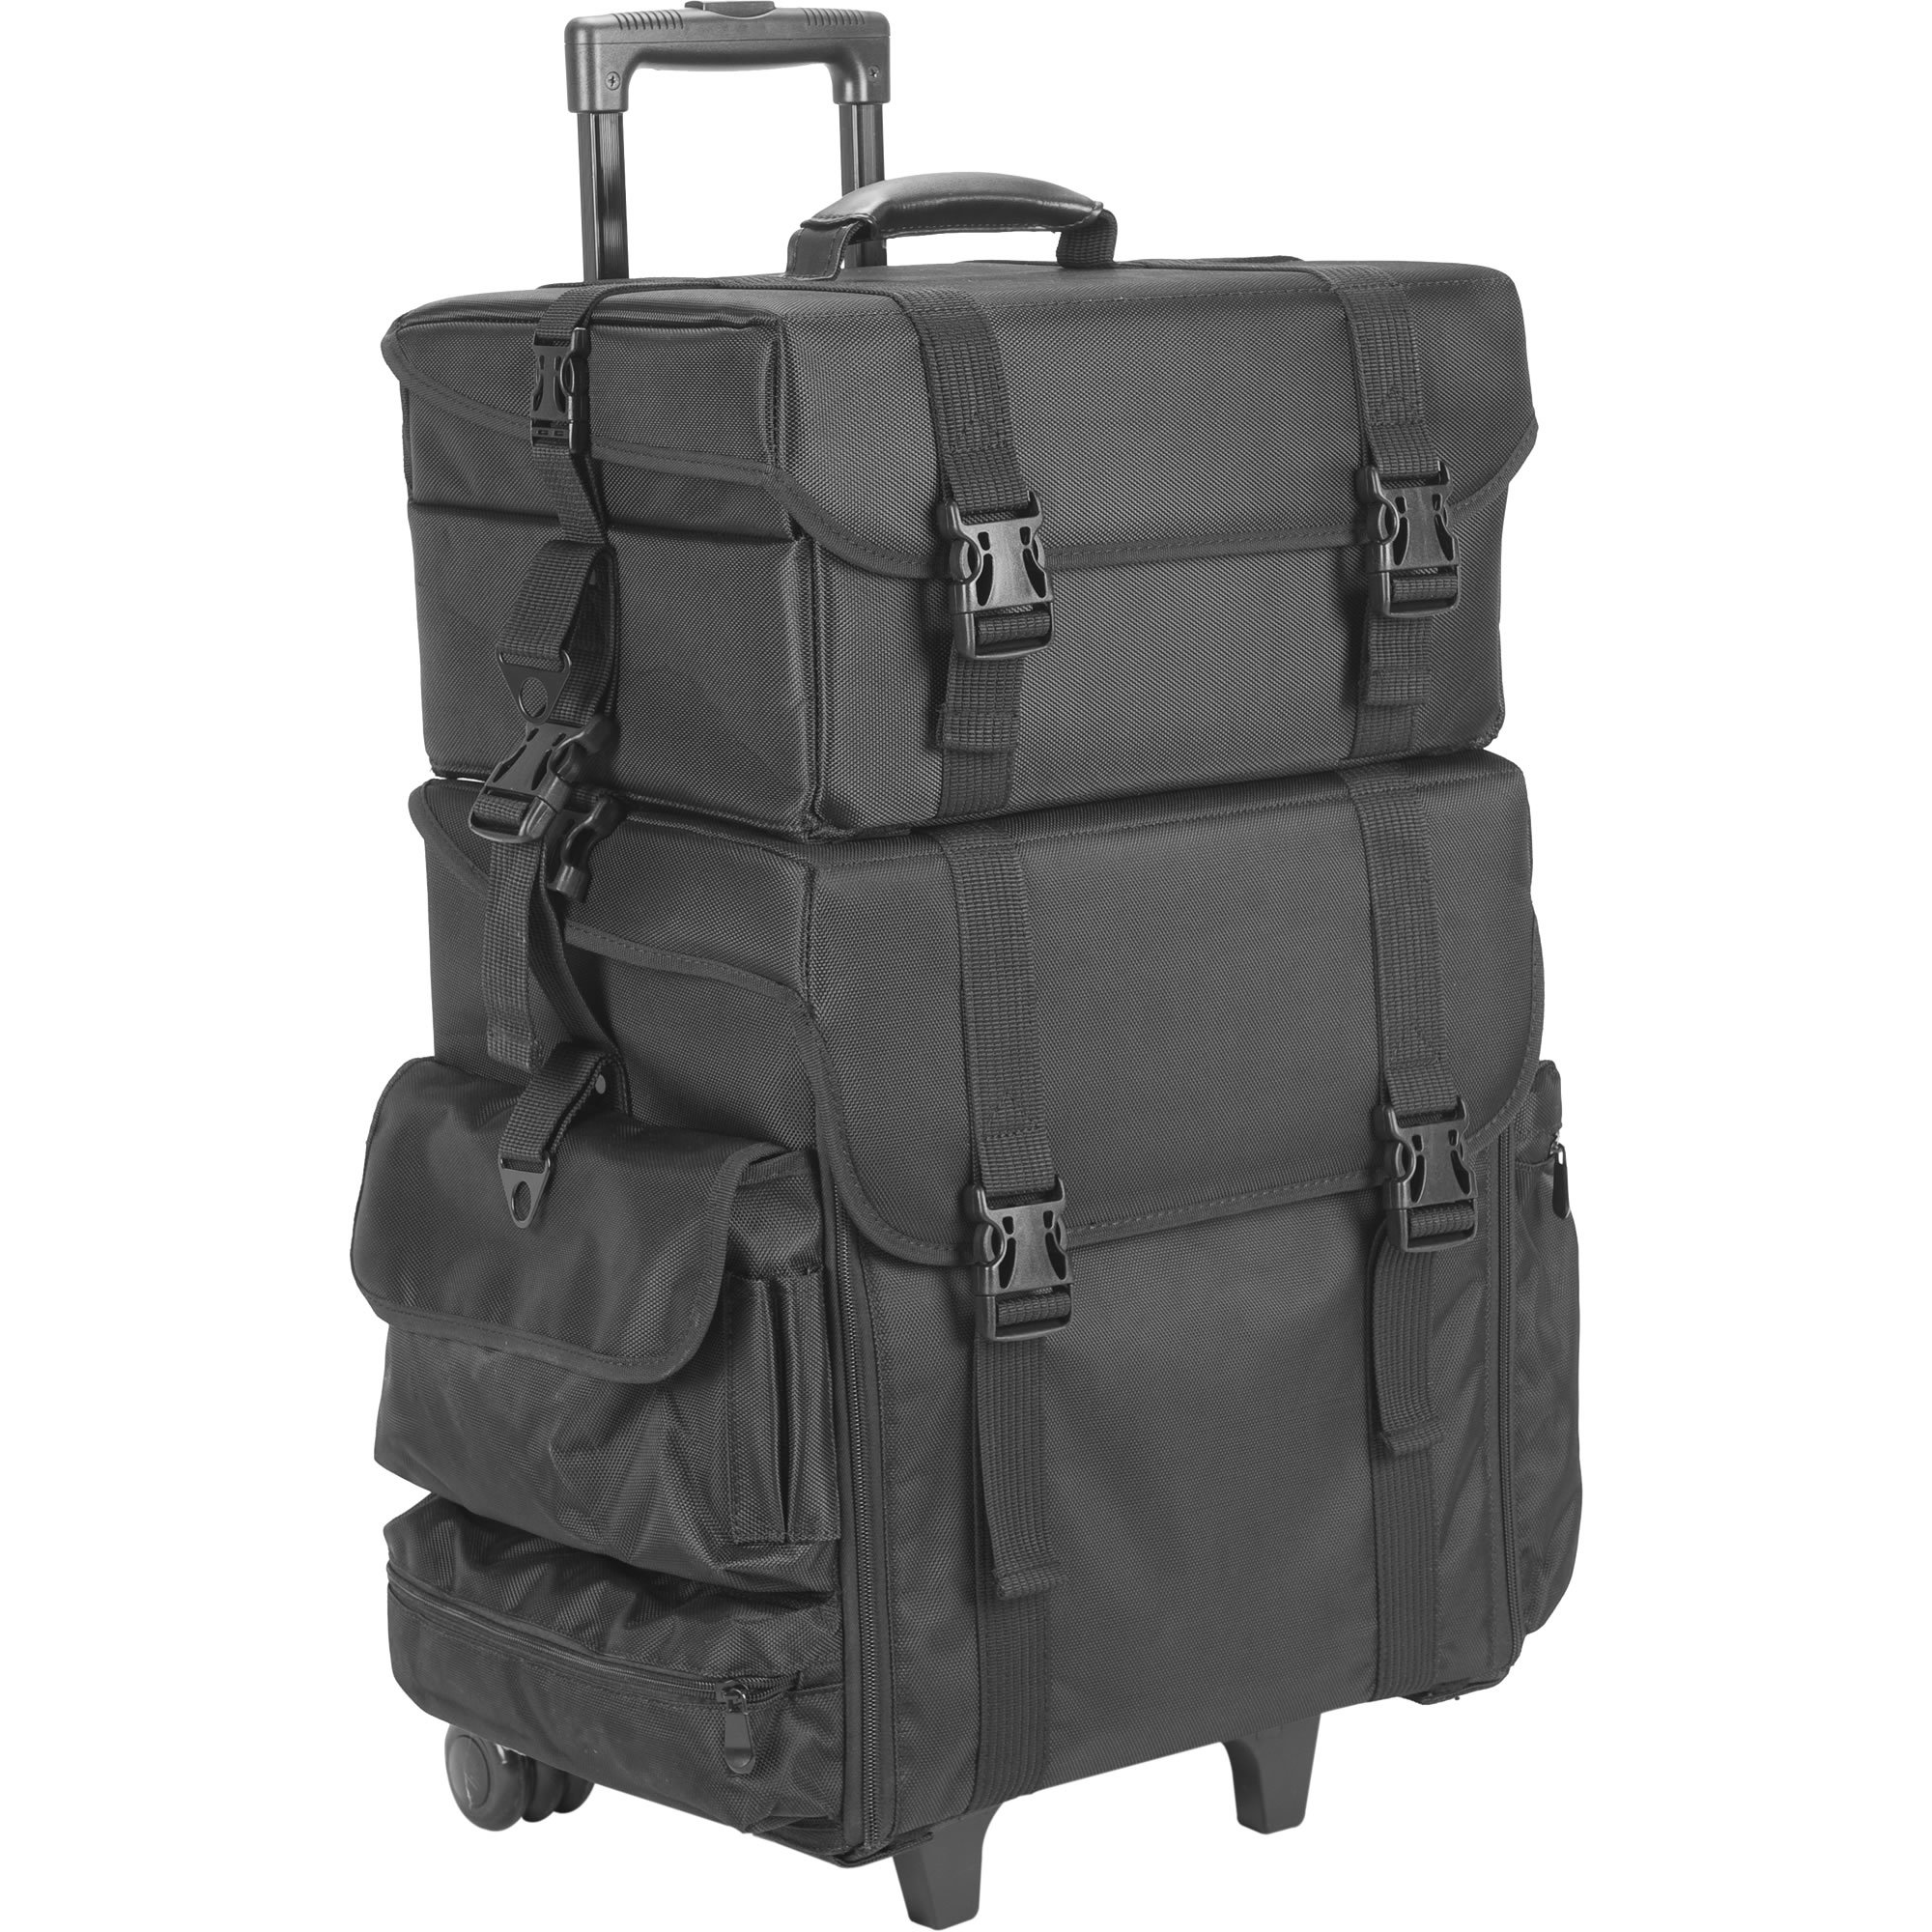 JustCase Hiker T5273 2-in-1 Soft Sided Professional Rolling Trolley Makeup Artist Cosmetic Case, Black Nylon